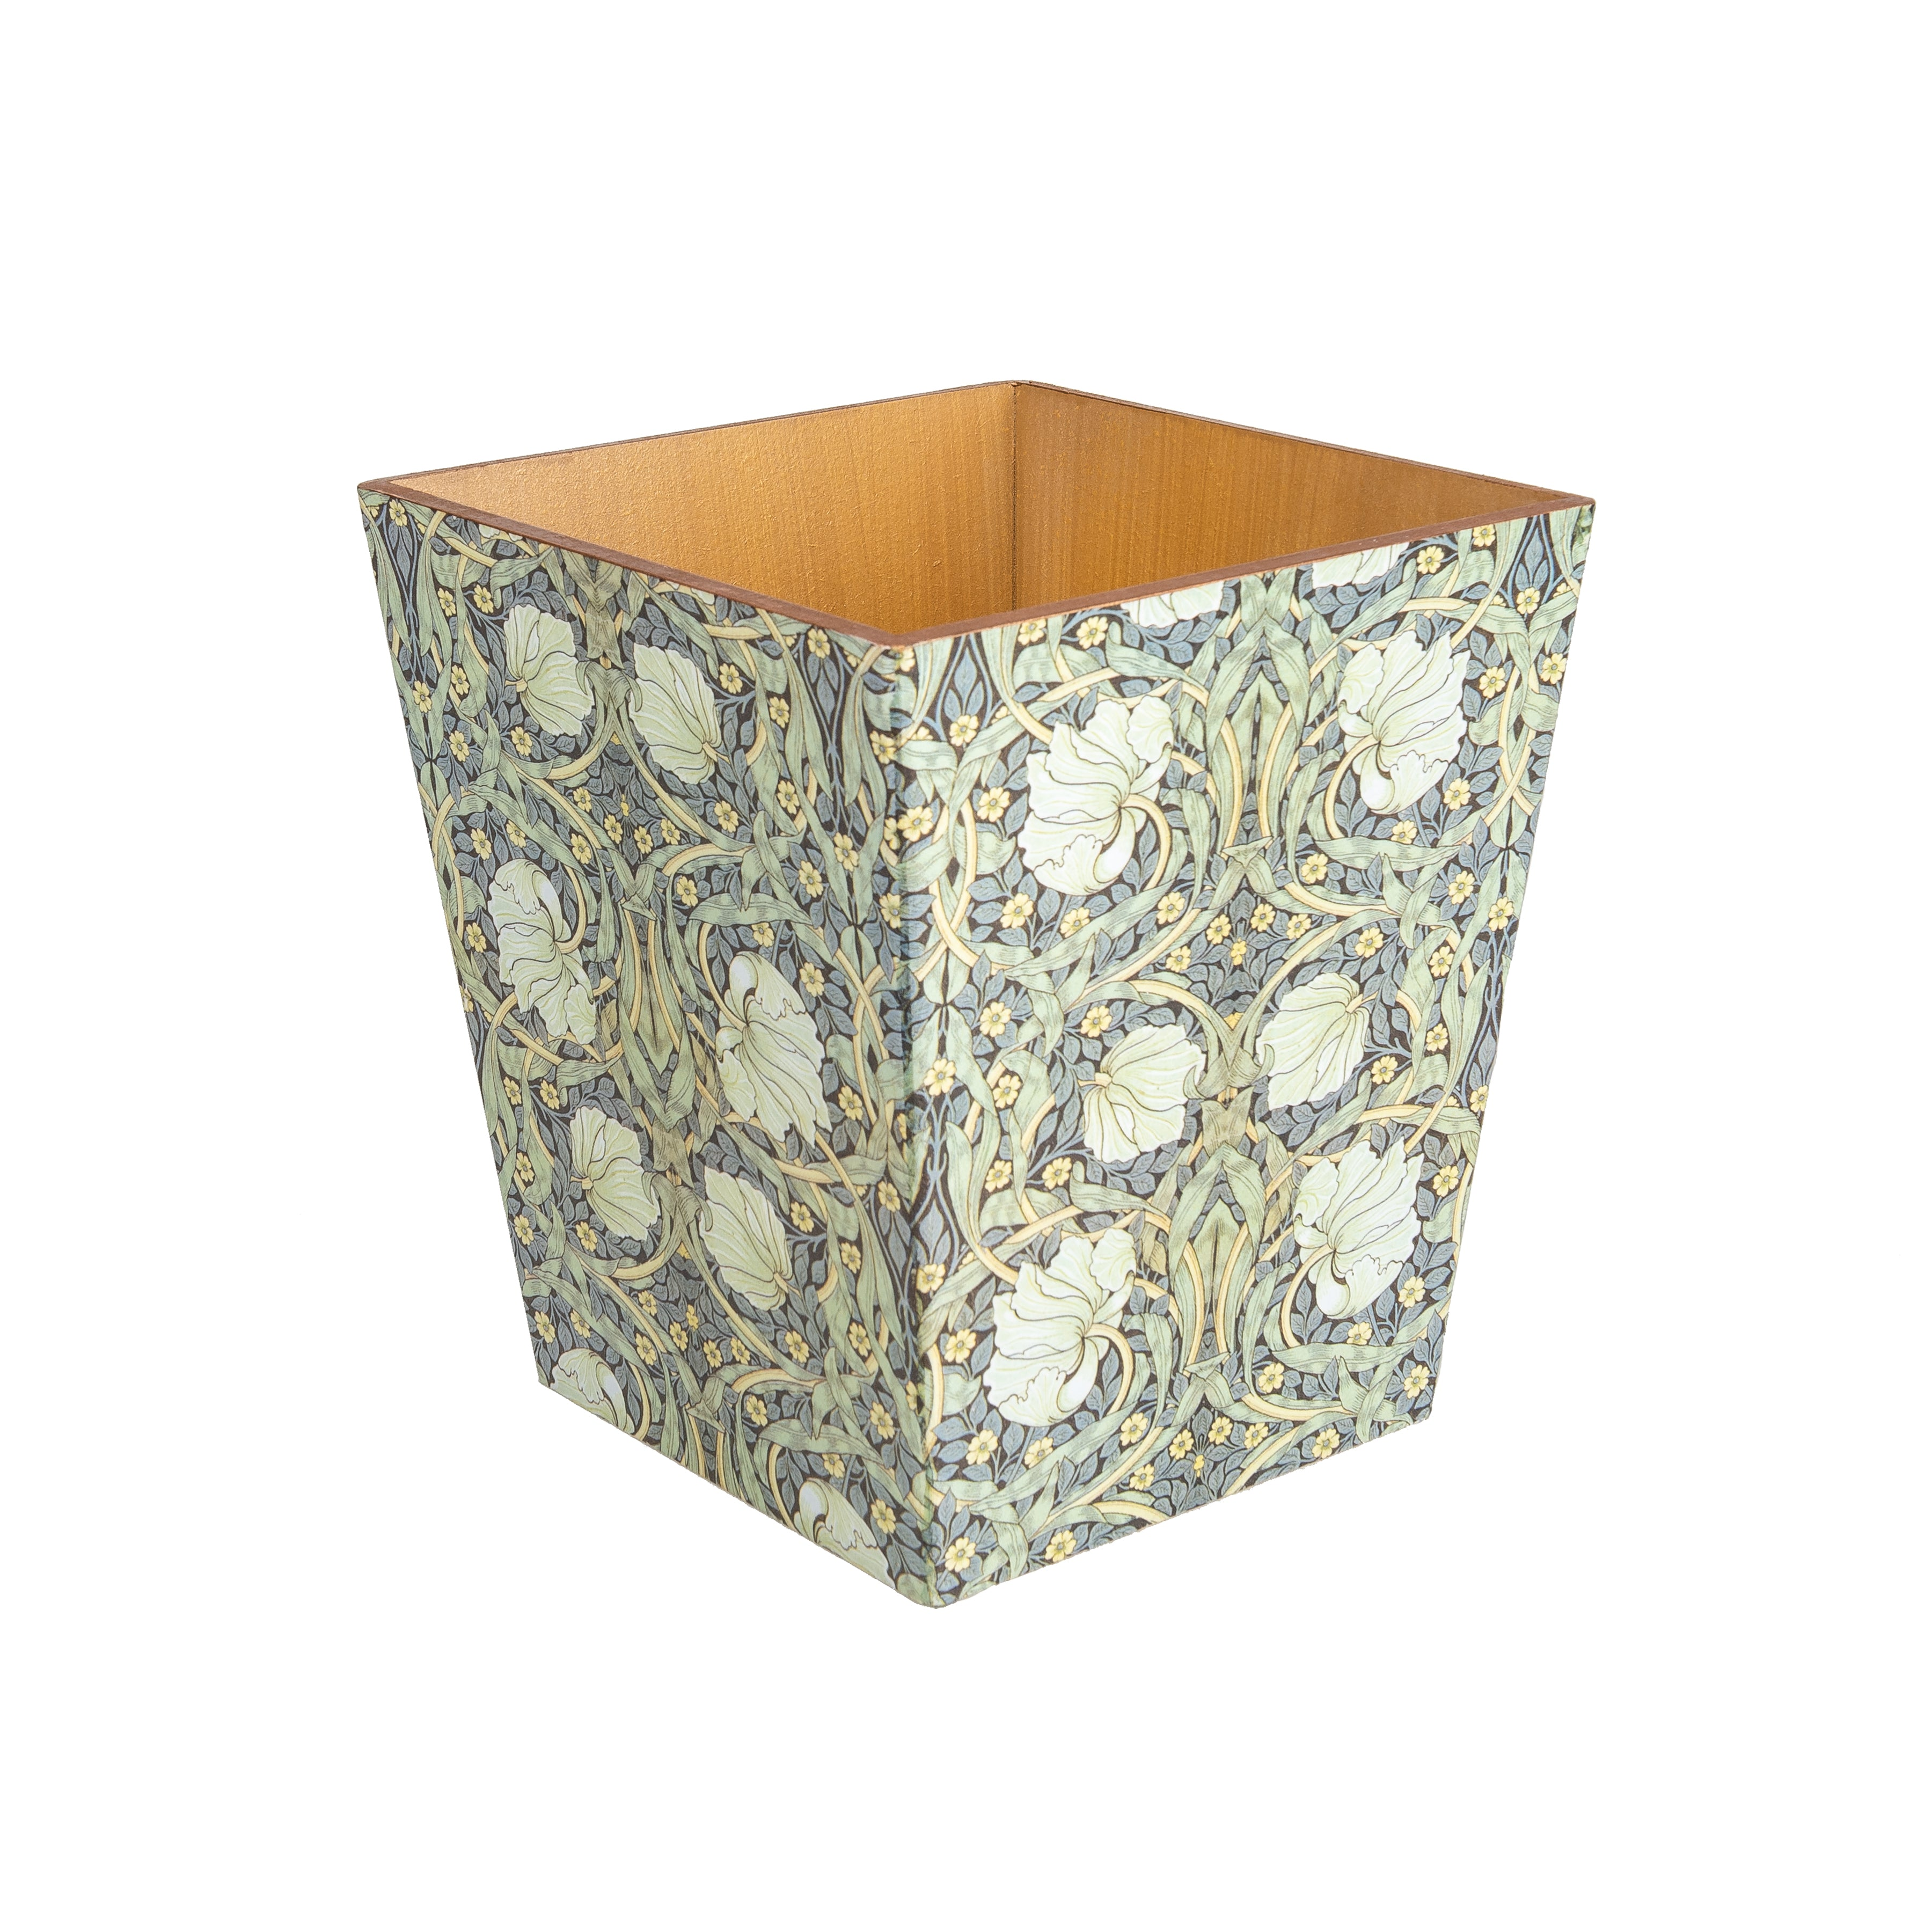 Baroque Matching Waste Paper Bin & Tissue Box Cover